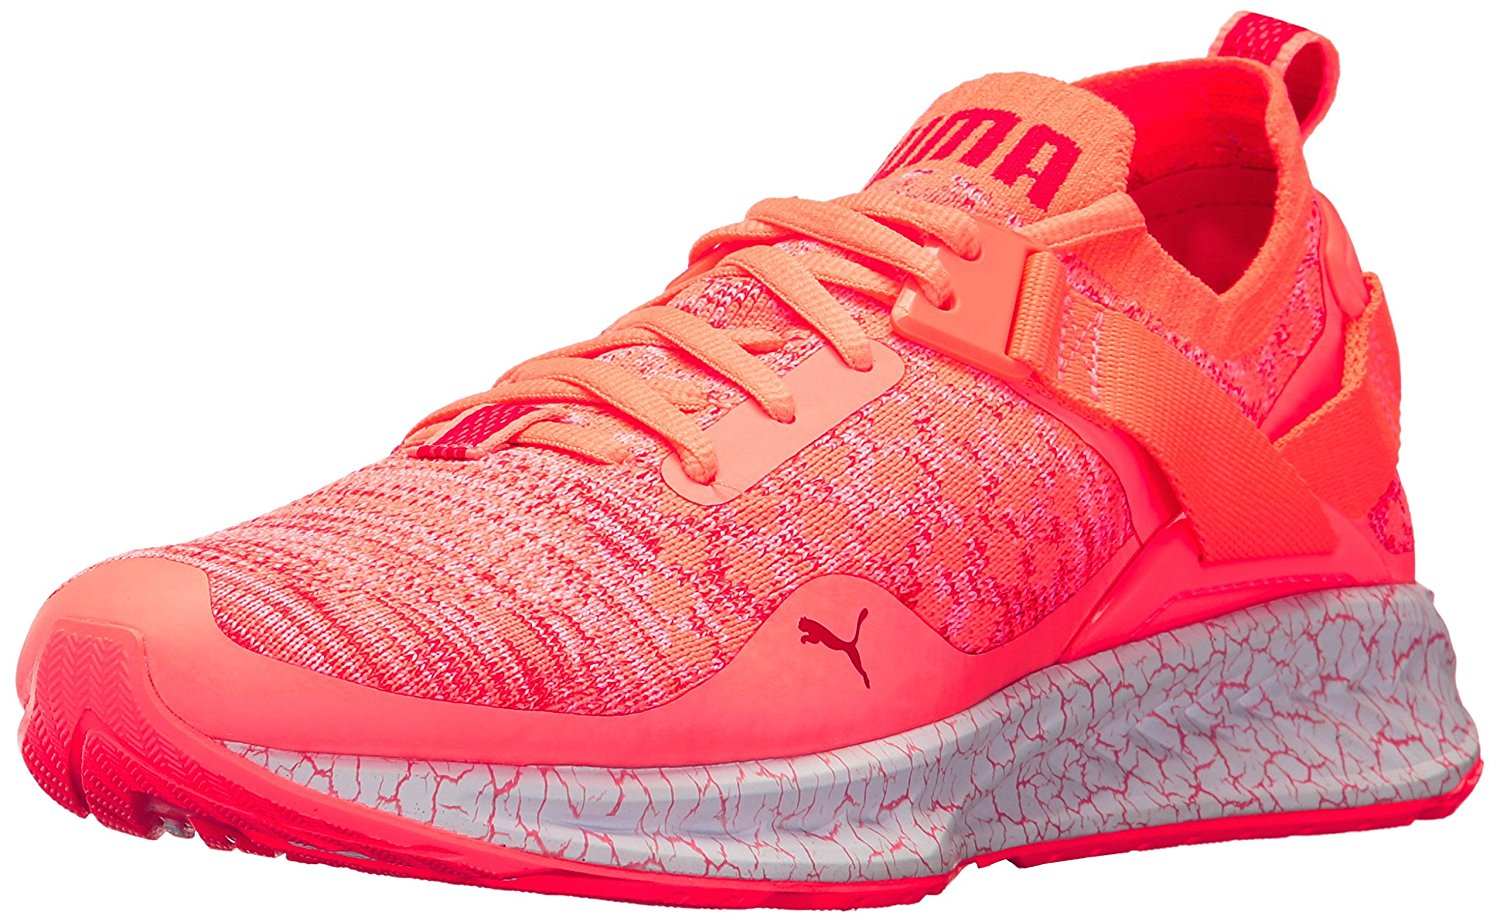 c733f1e313a7 ... Man Woman:PUMA Women s Ignite Evoknit Lo Lo Lo Hypernature Wn  Sneaker:Good ...